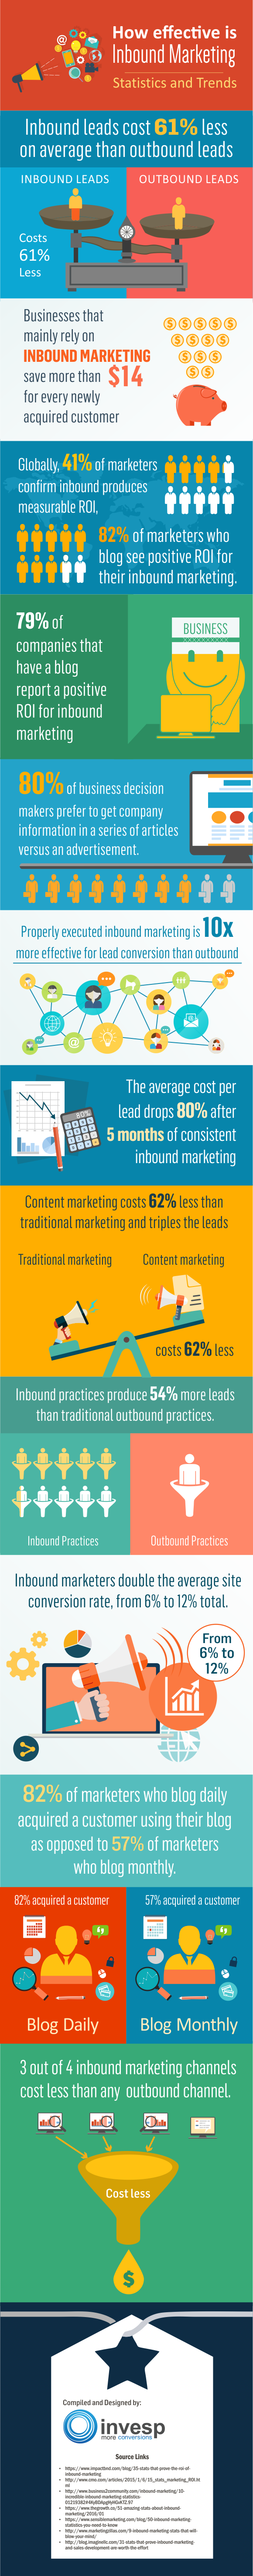 Infographic by- Invesp Conversion Optimization Services